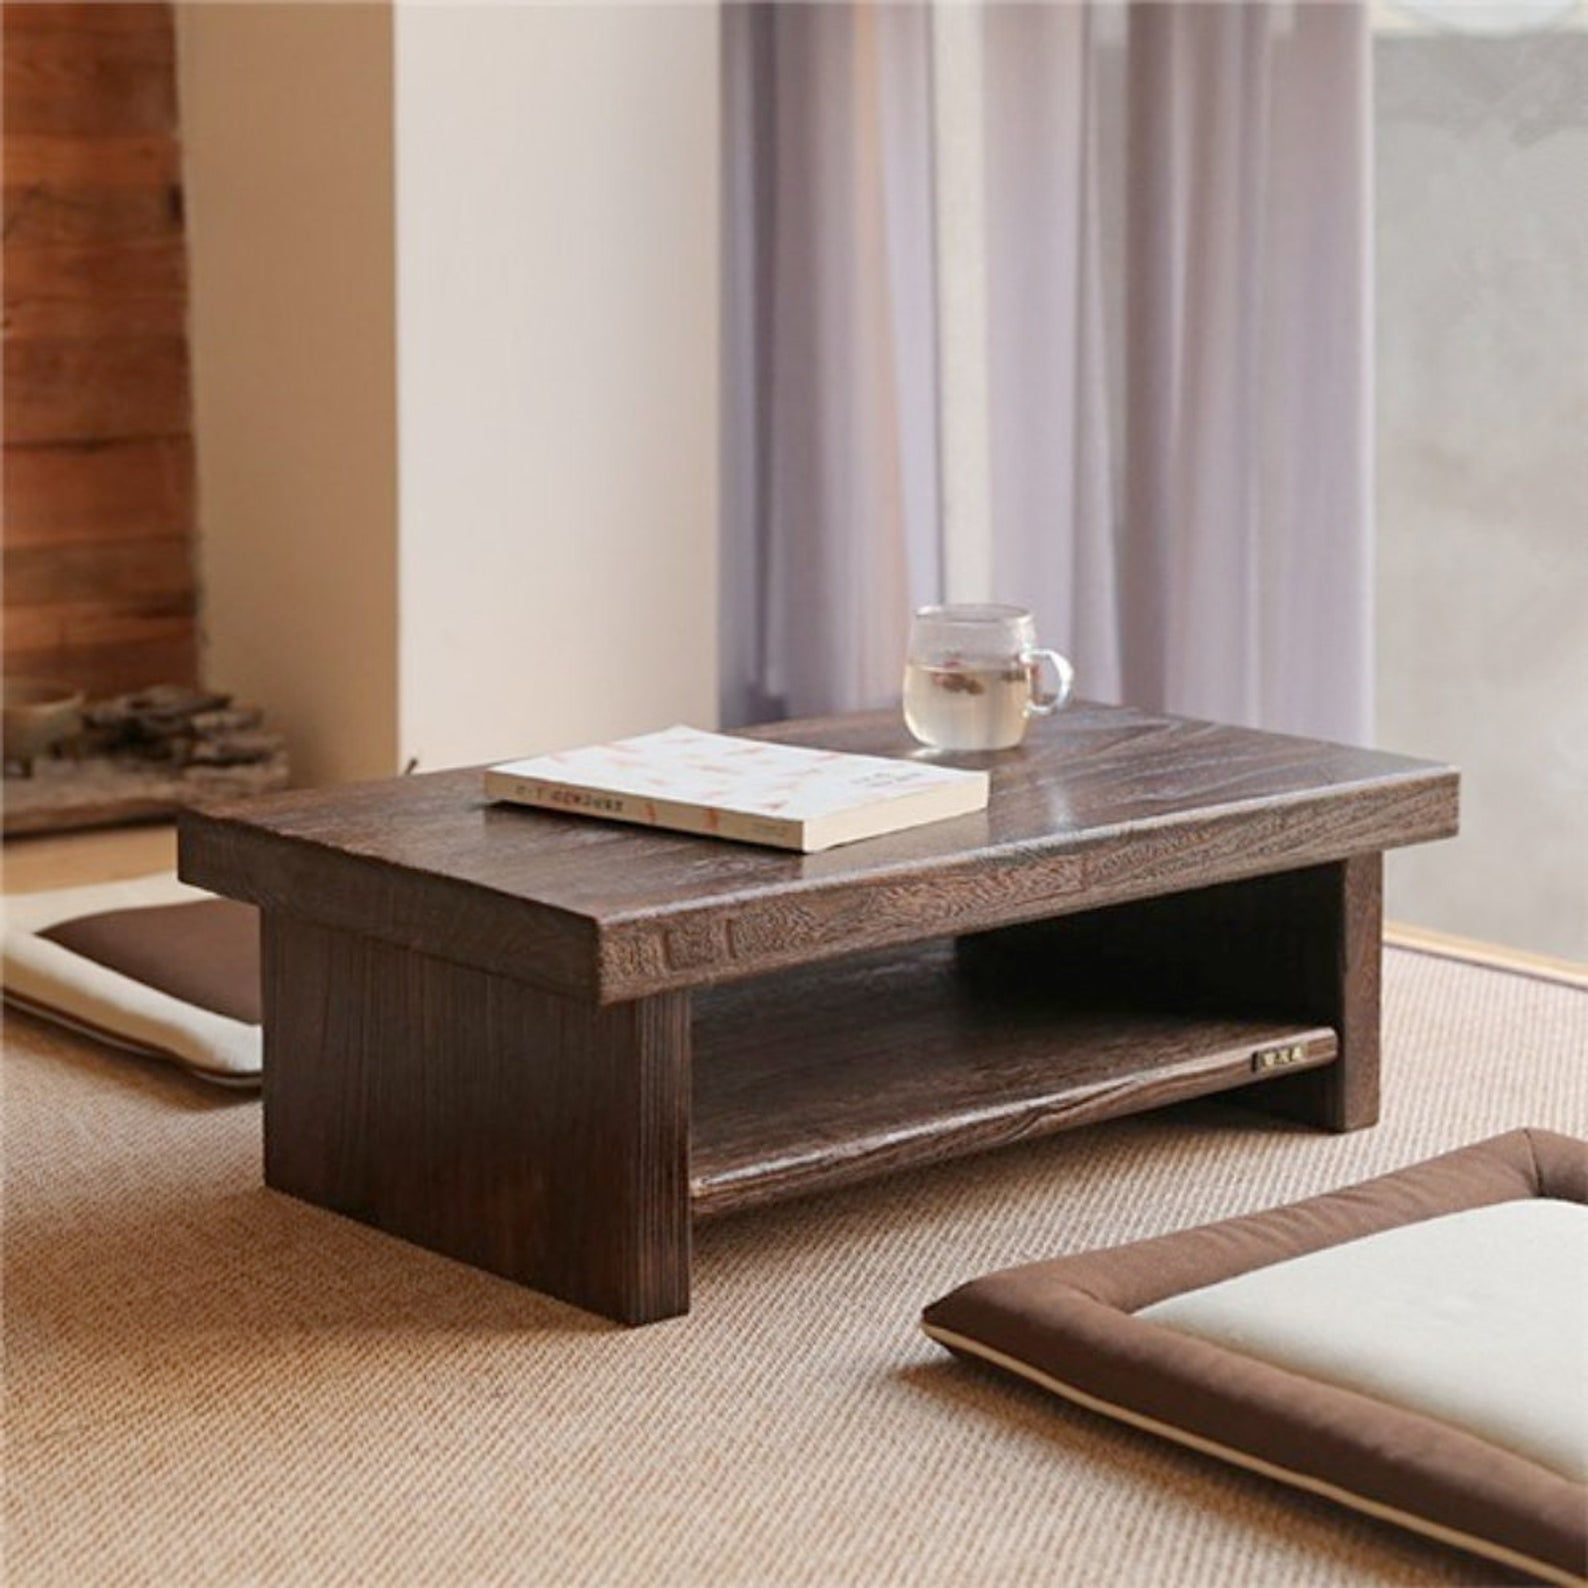 Dystopian Furnishings Traditional Japanese Floor Table Etsy Furniture Sets Design Japanese Furniture Coffee Table [ 1588 x 1588 Pixel ]